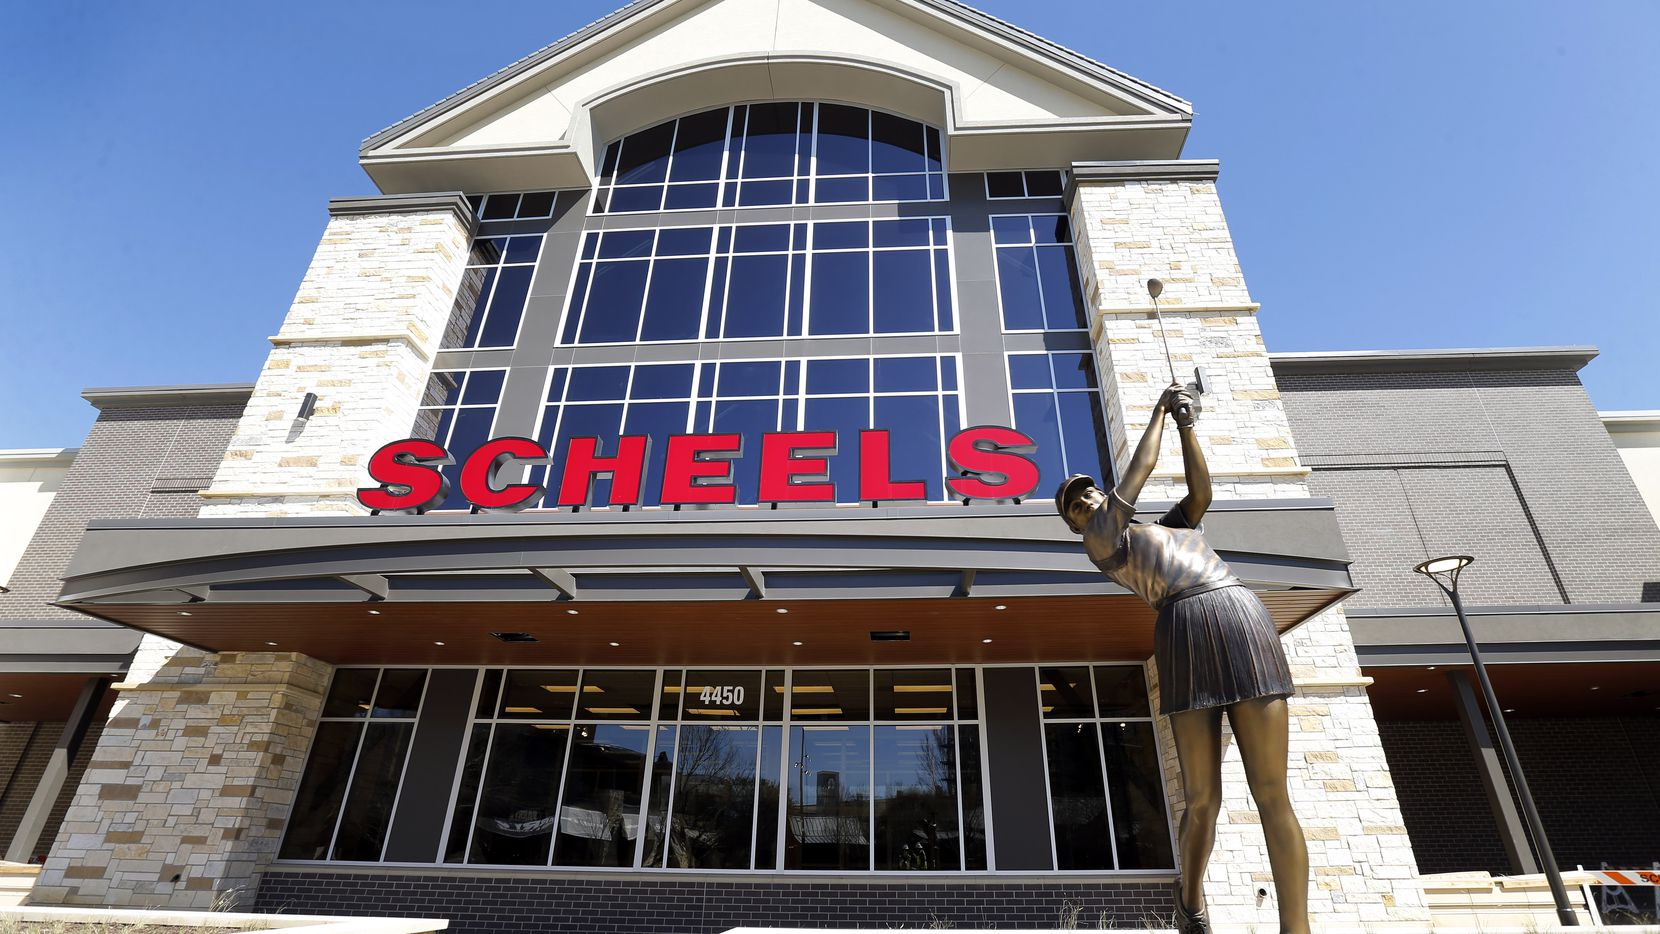 The massive Scheels sporting goods store at the Grandscape retail development in The Colony, shown on March 5.